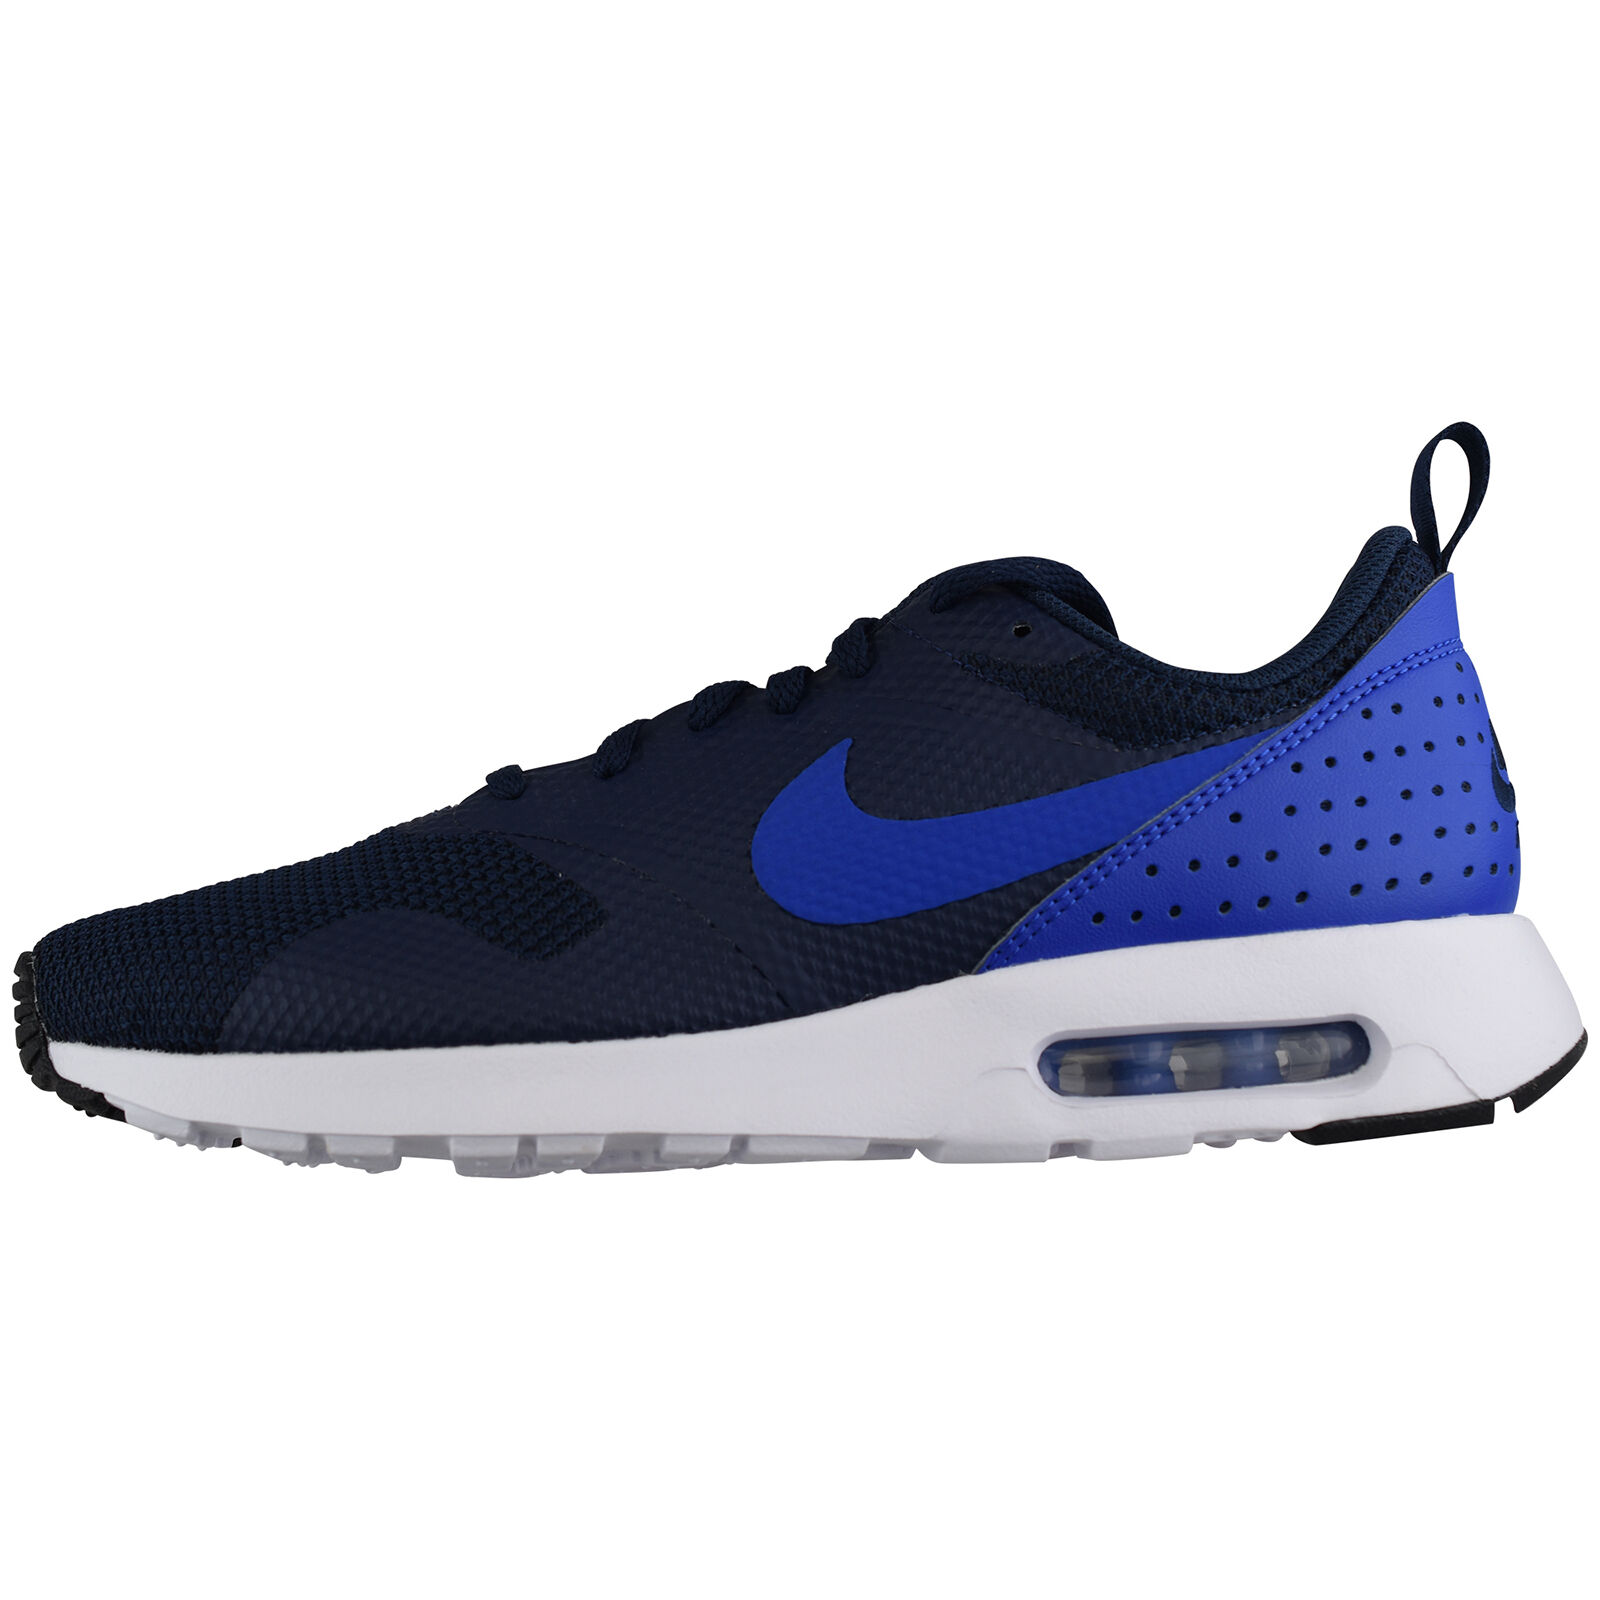 nike 705149-407 air max tavas schuh 705149-407 nike klassische lifestyle casual schuhe. 8bf9c1